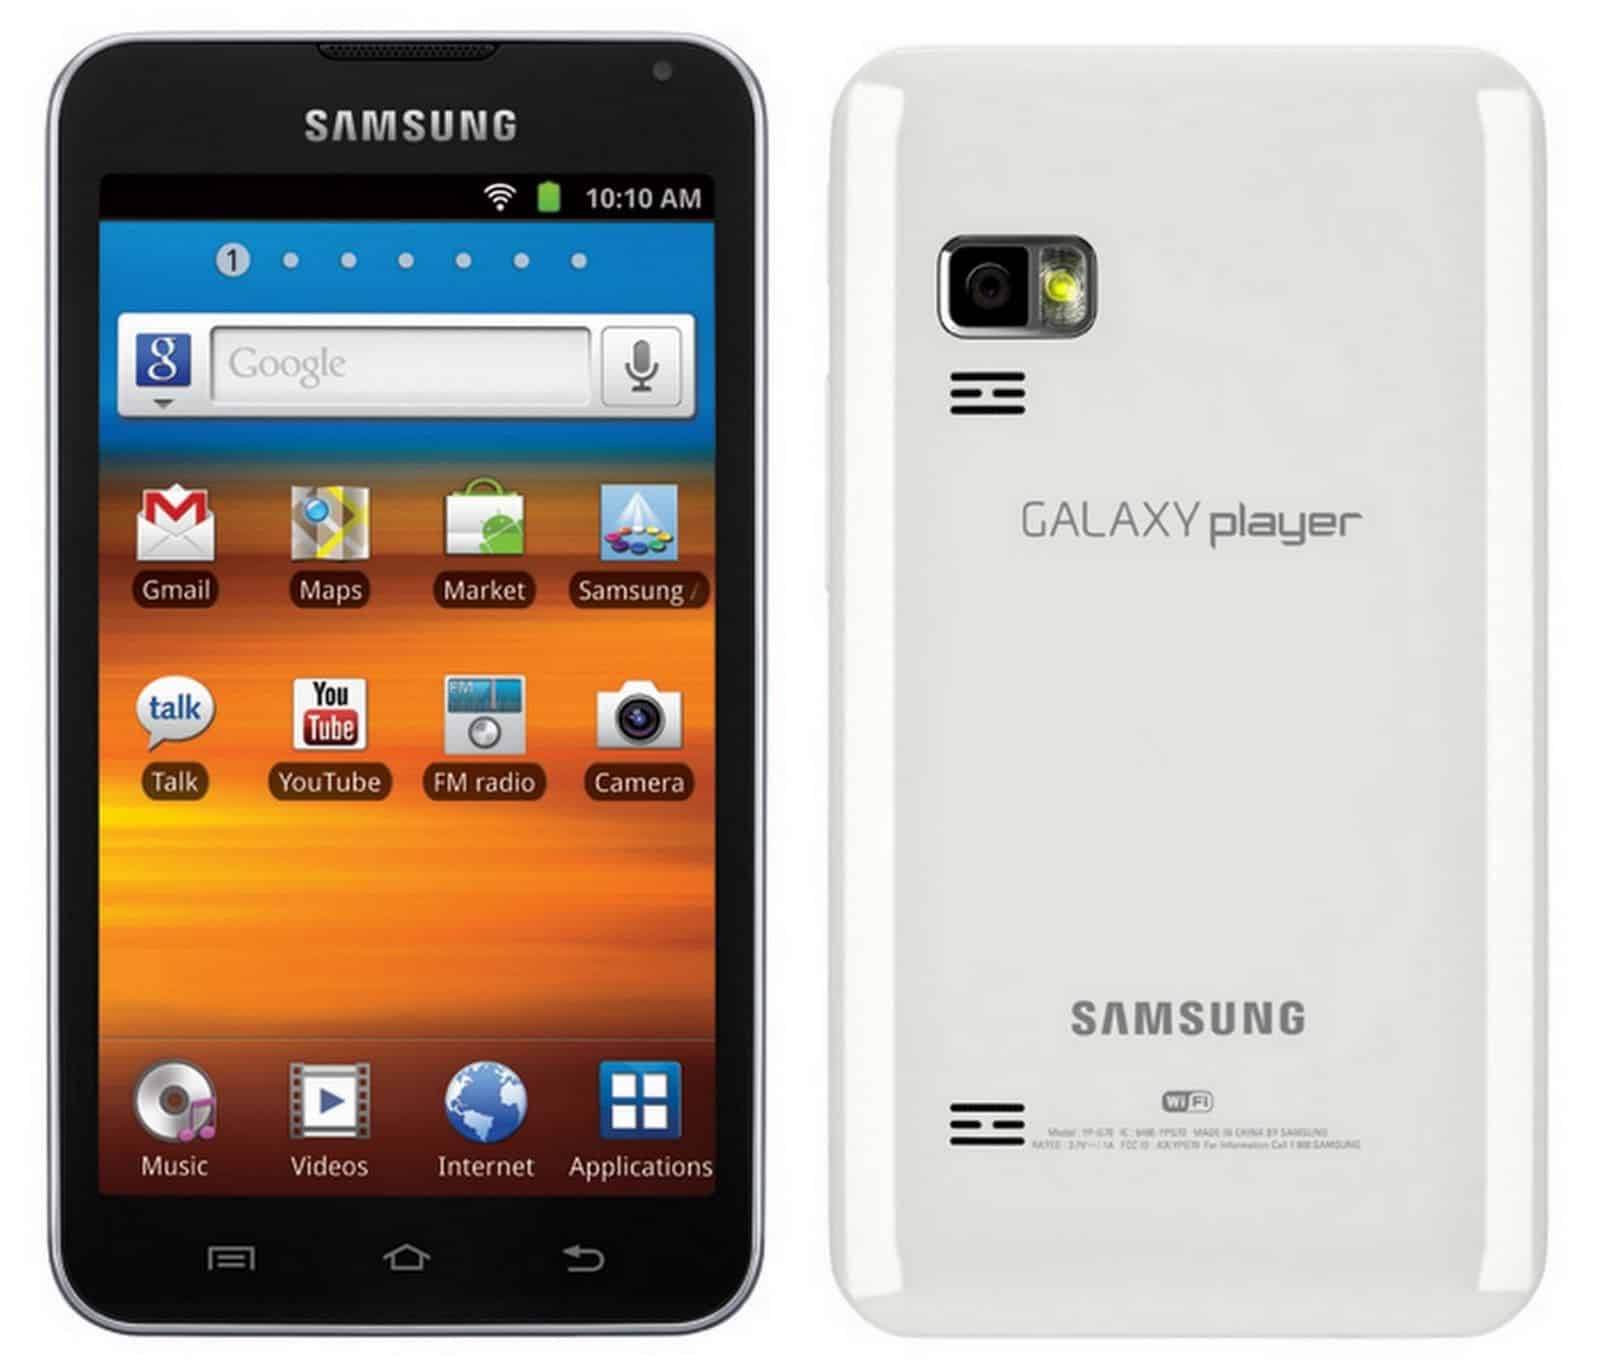 samsung galaxy player yp-g70 firmware update